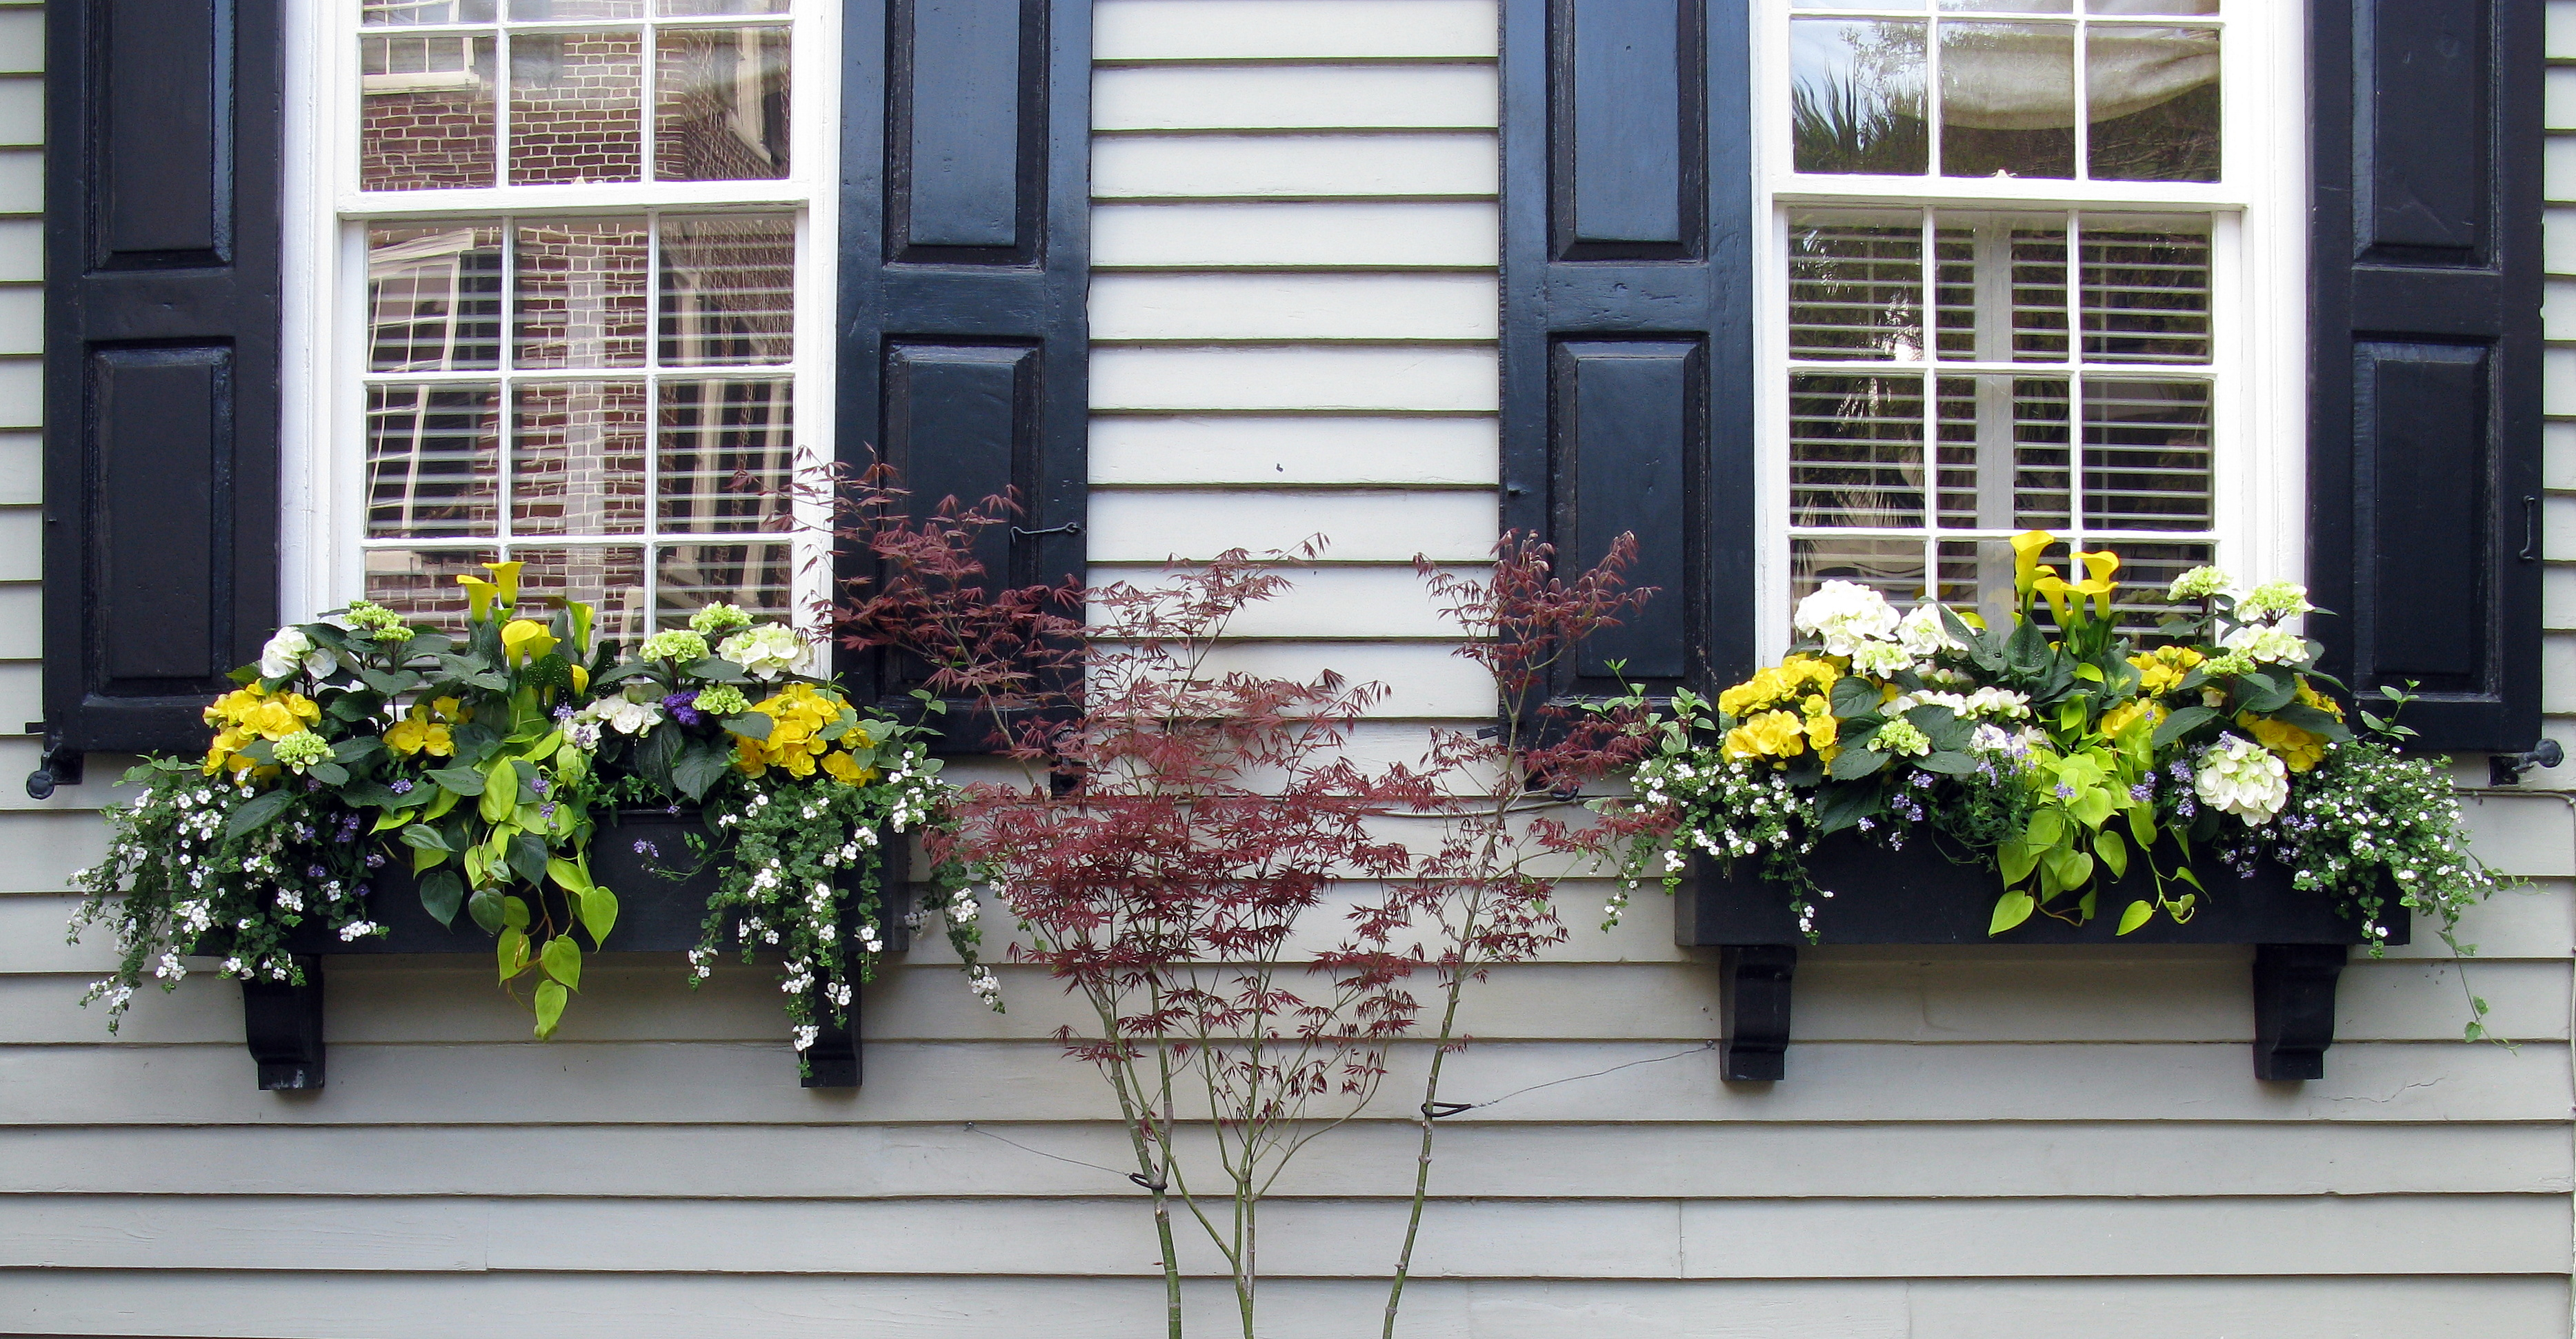 Two Window Boxes with Black Shutters, Tradd Street, Charleston, SC